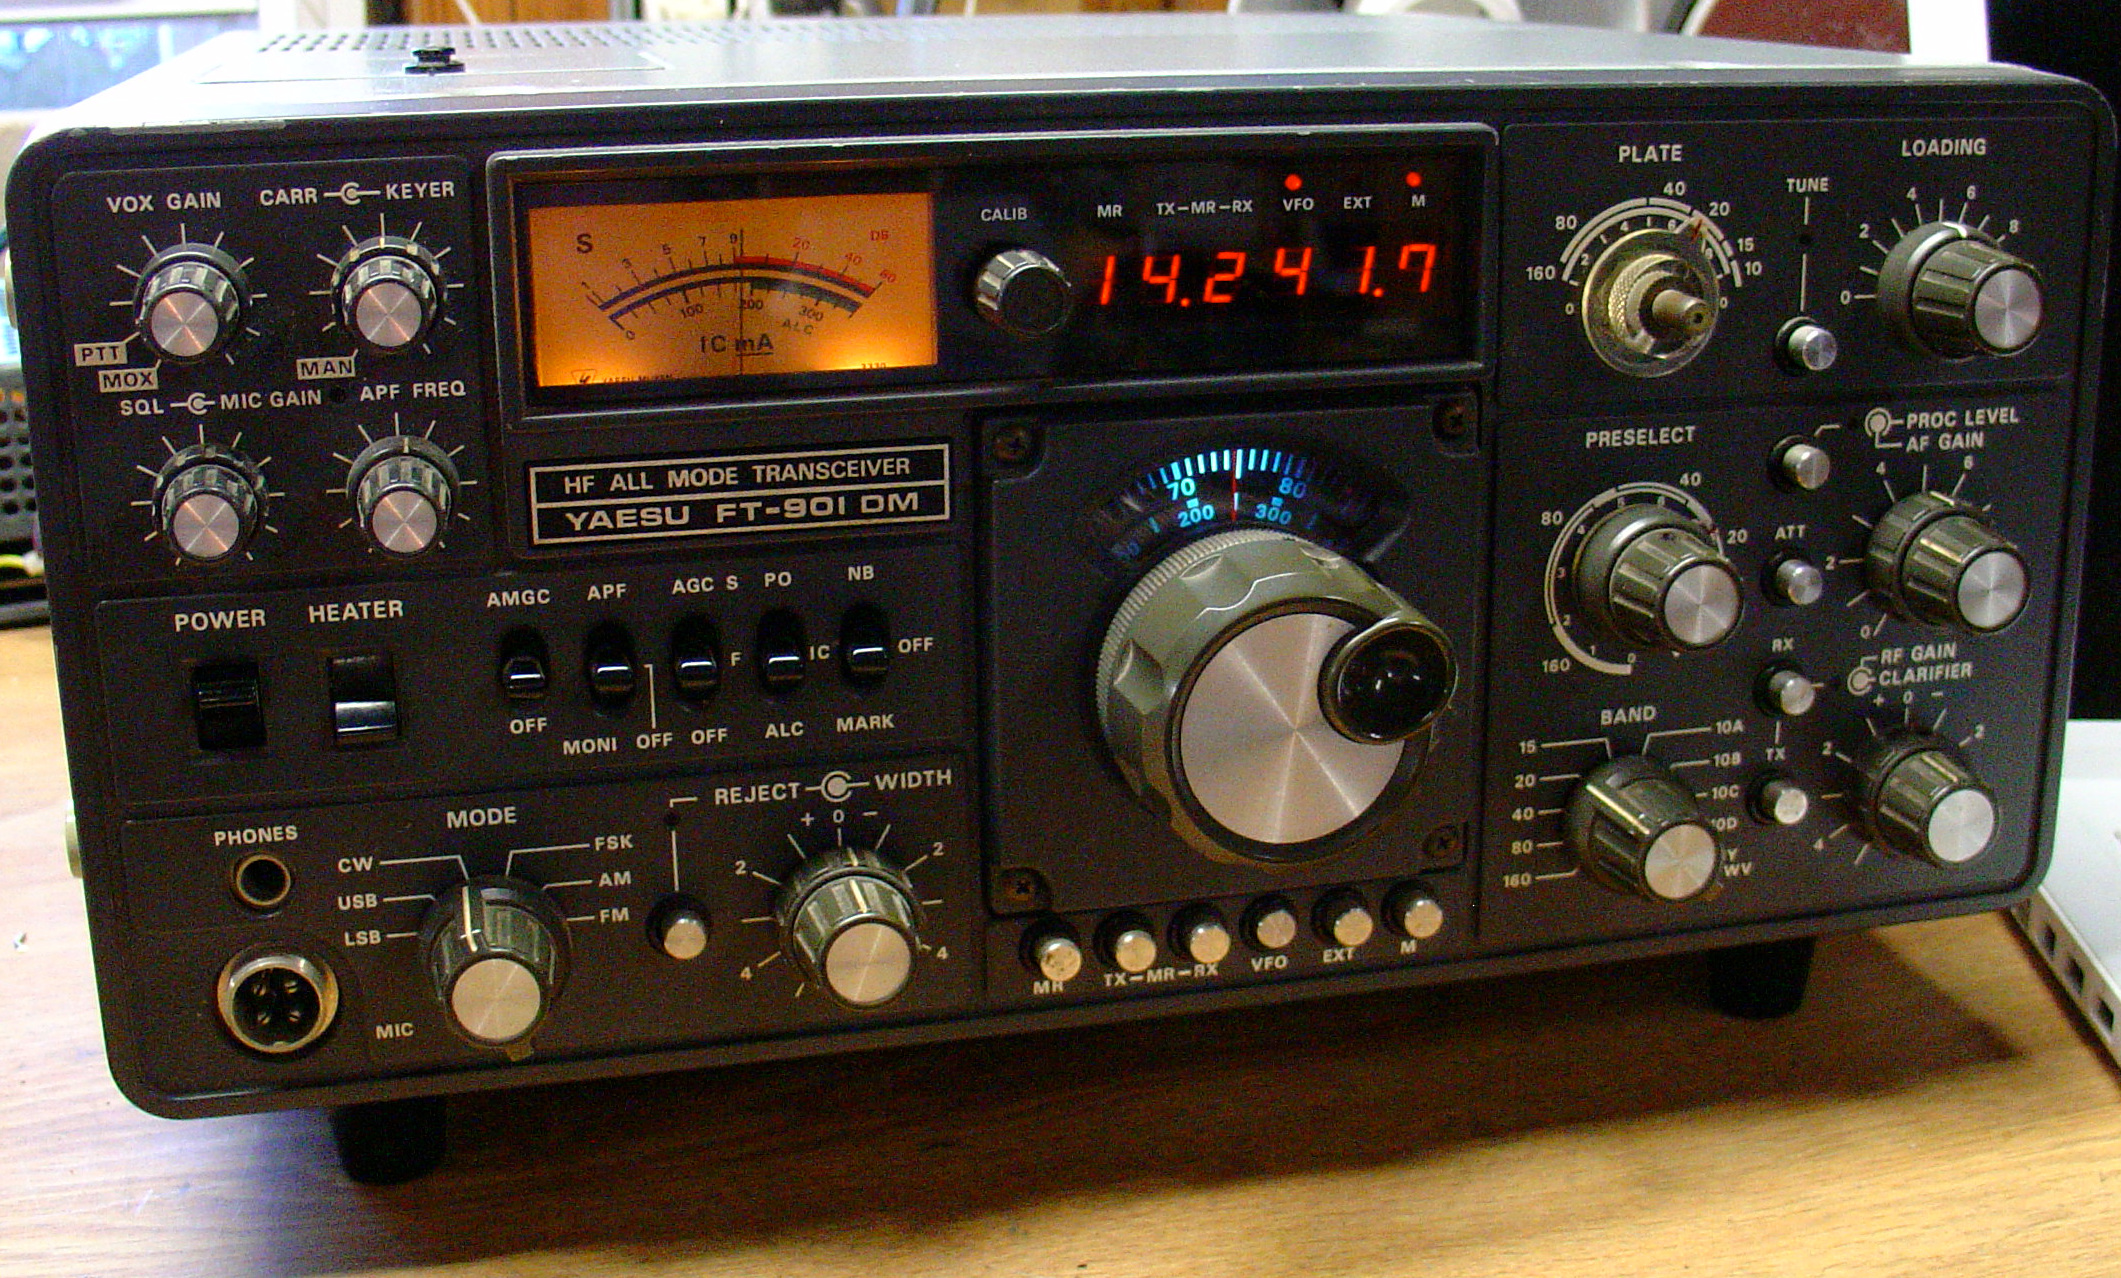 Yaesu ftdx 3000 manual for Ft 3000